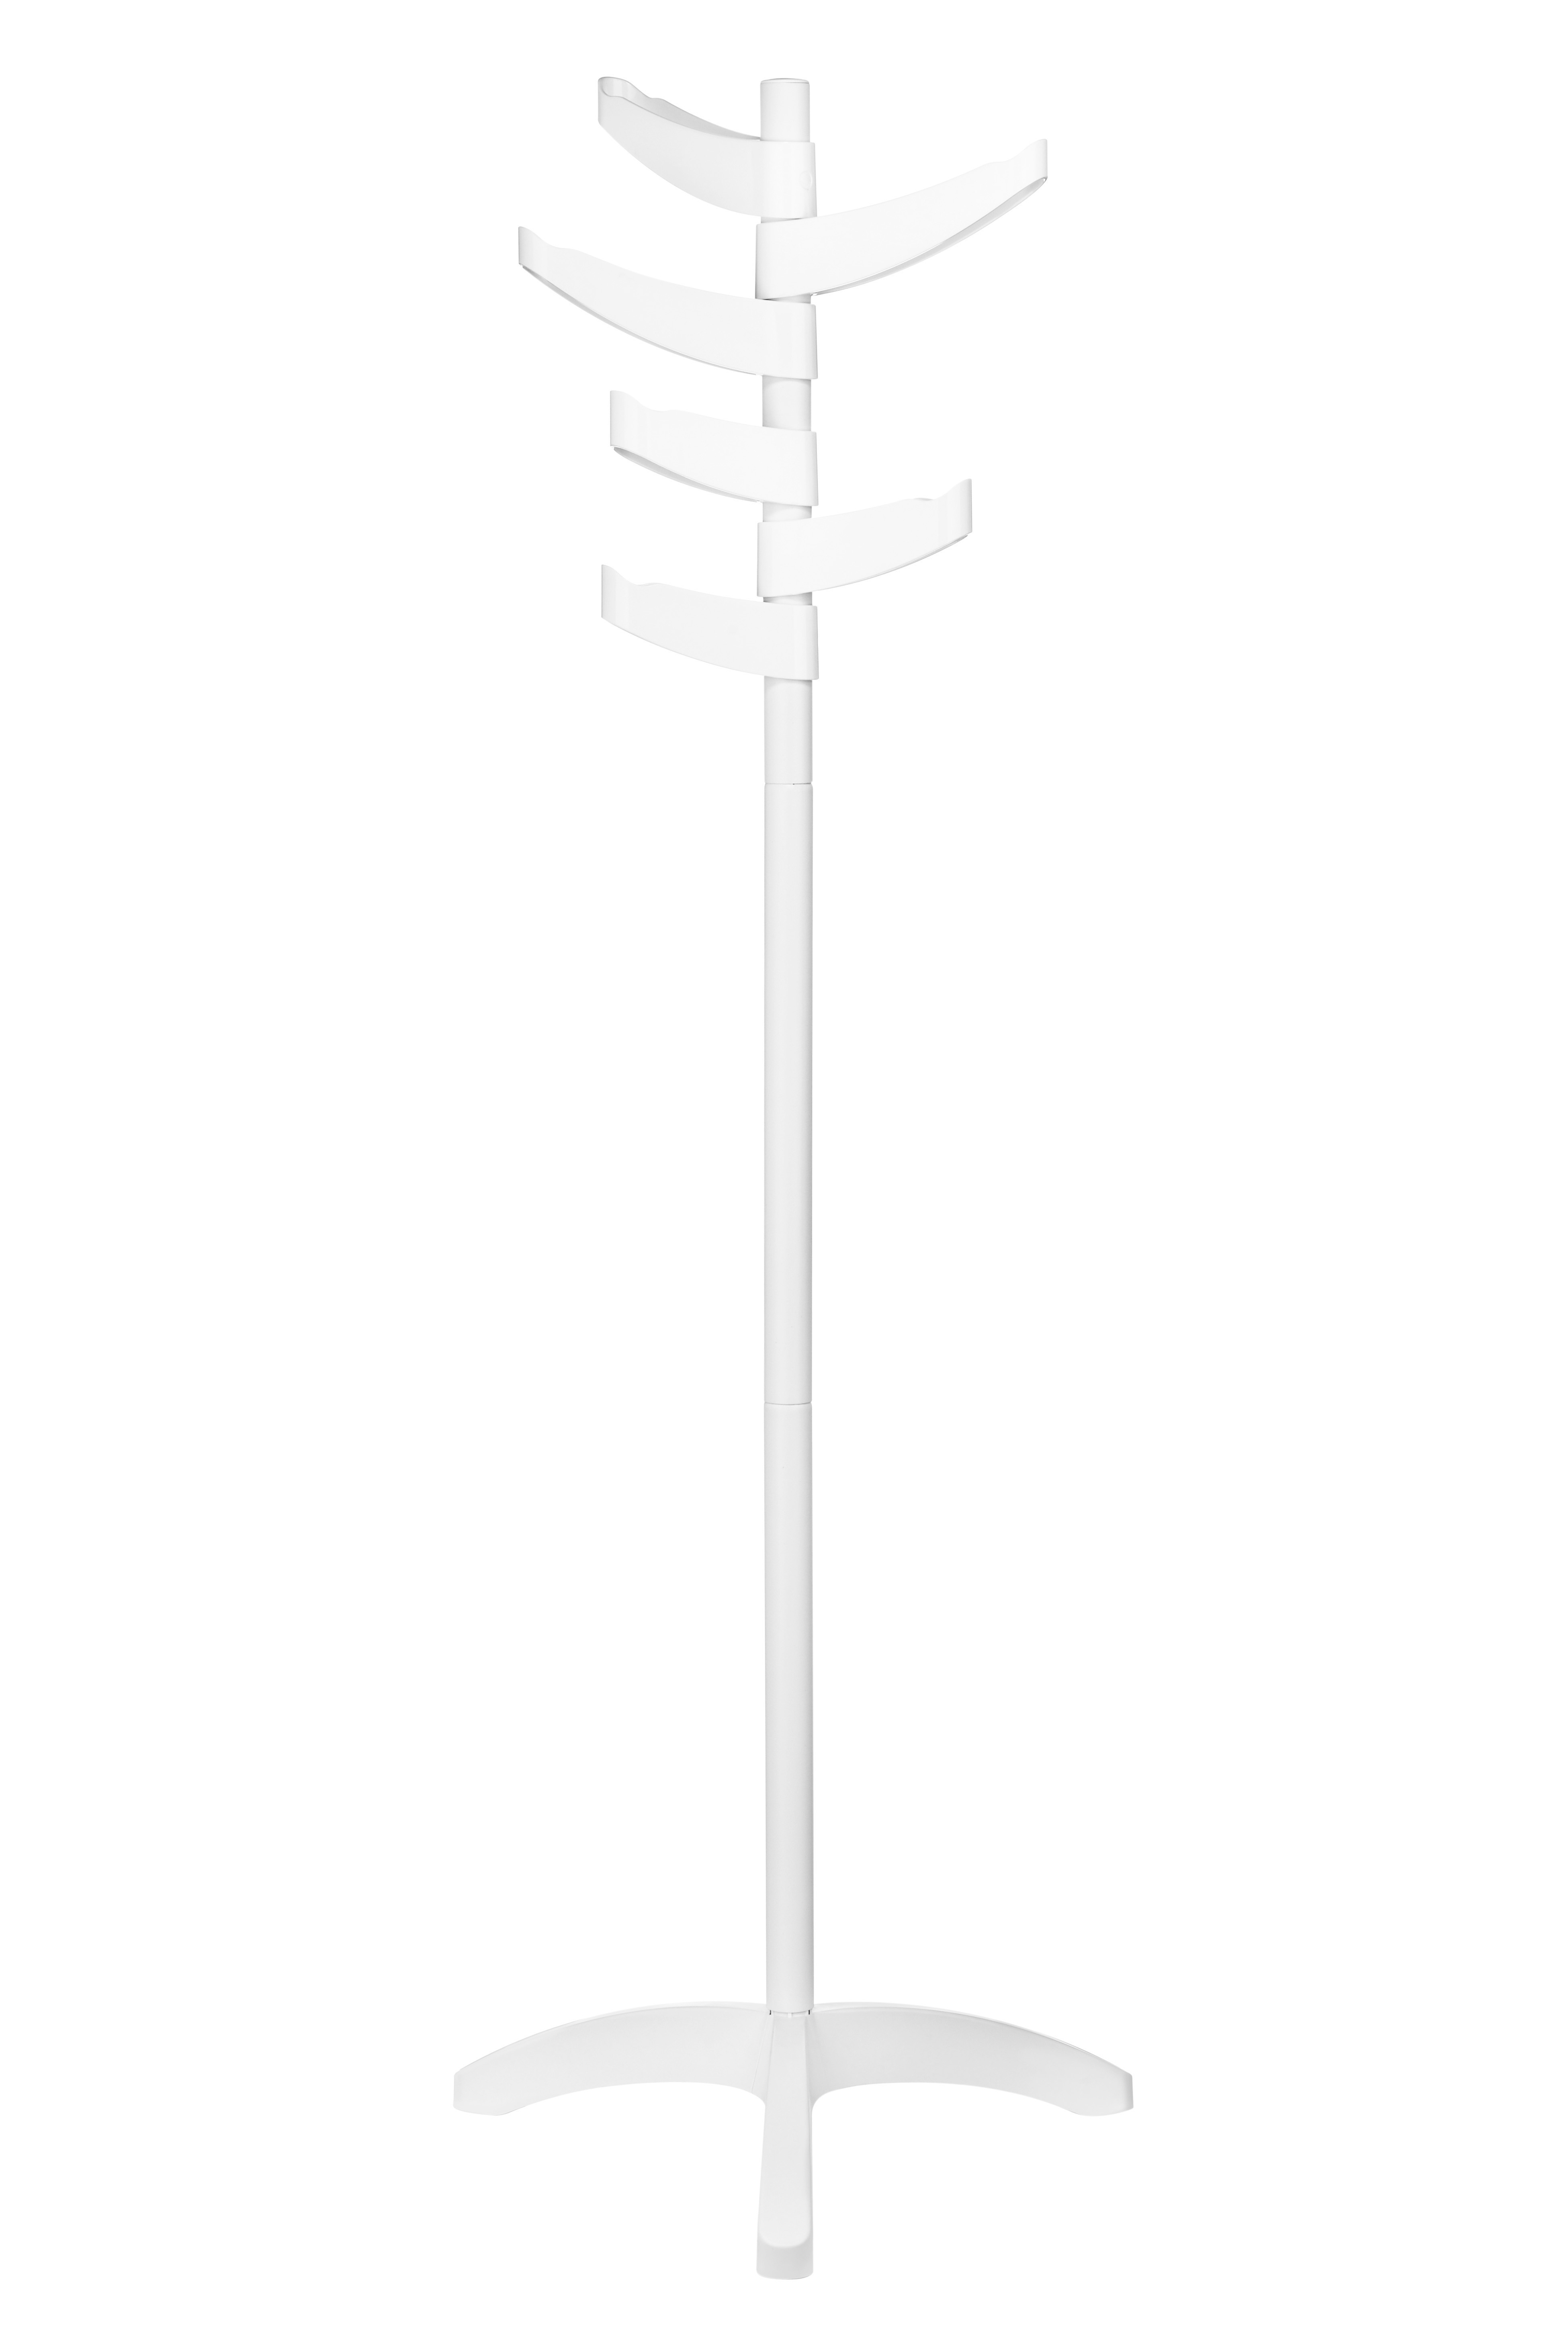 Prime Furnishing 6-Arm Coat Stand - White